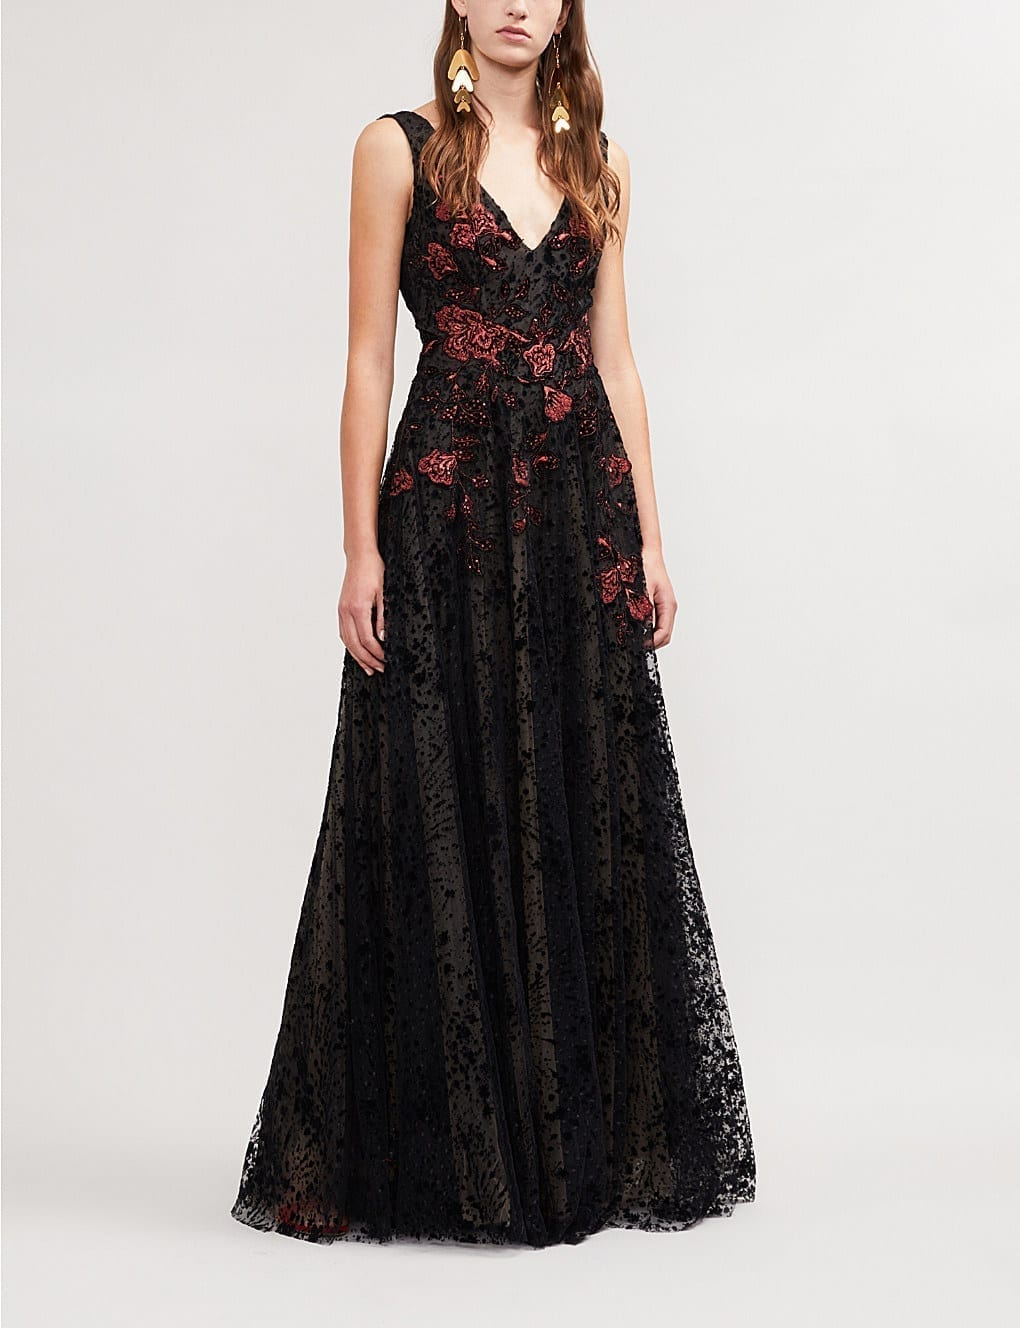 COSTARELLOS Floral Embroidered Flocked Tulle Black / Red Gown